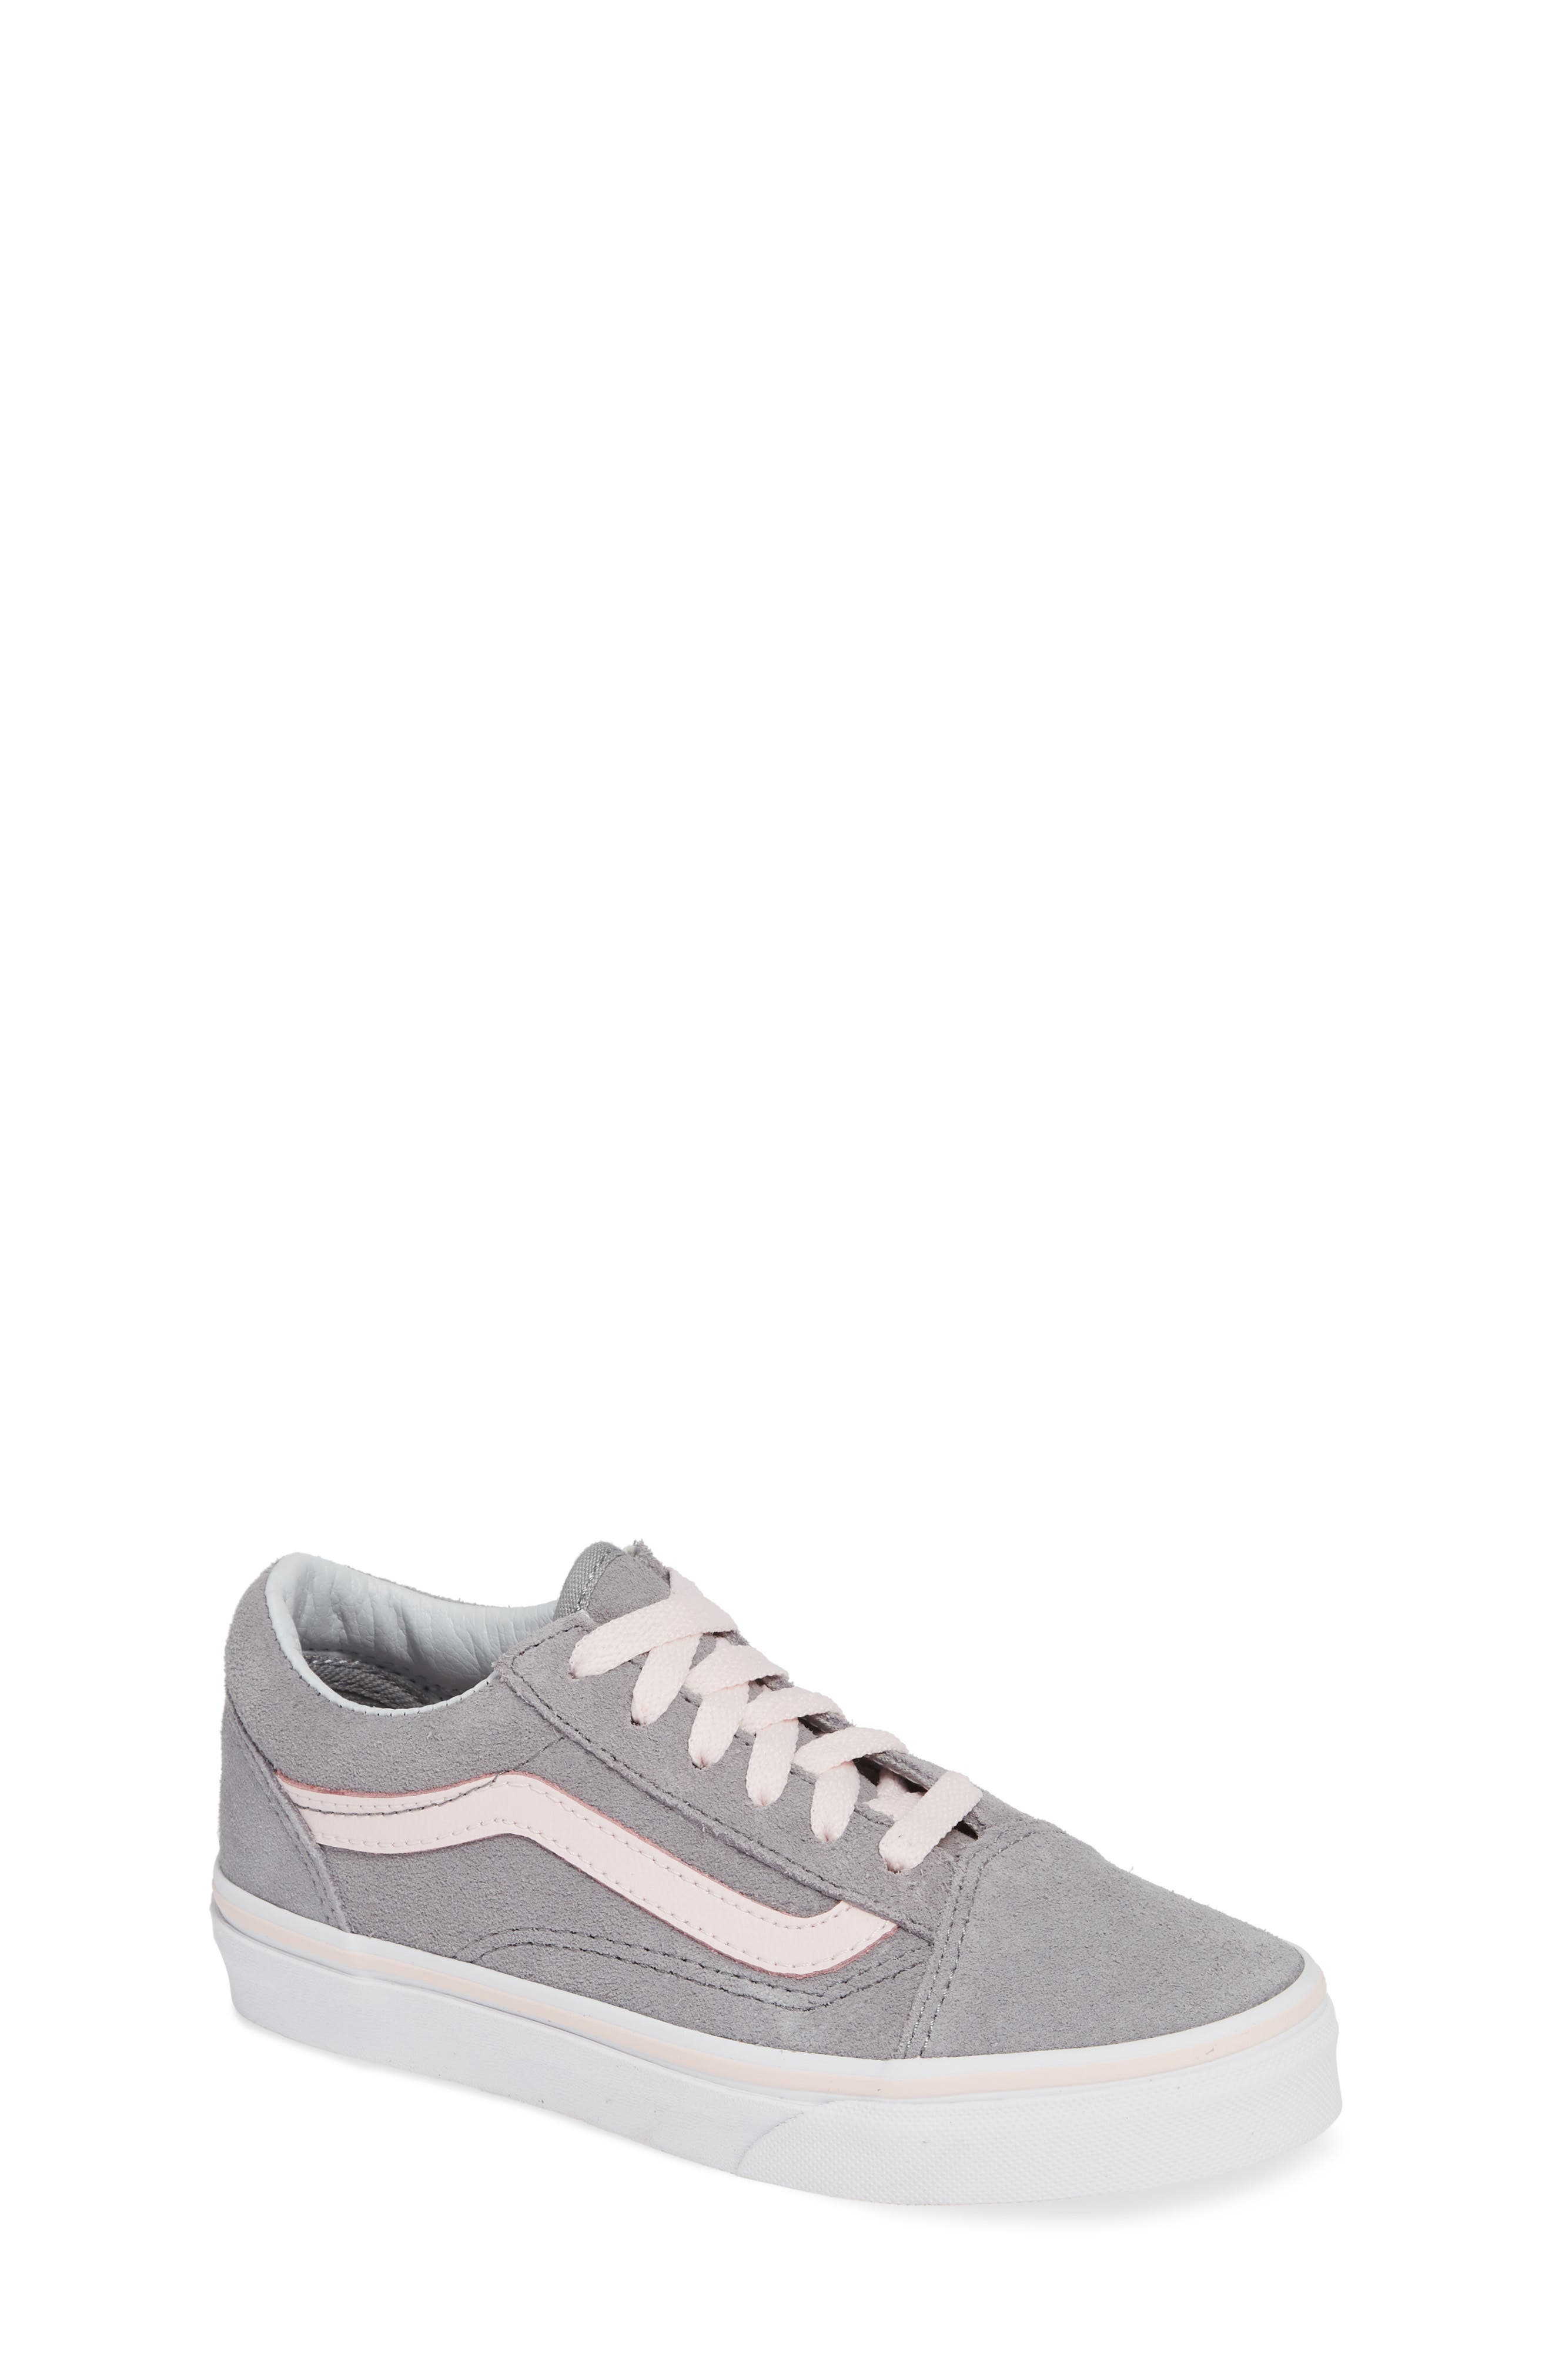 Old Skool Sneaker,                         Main,                         color, SUEDE ALLOY/ PINK/ TRUE WHITE